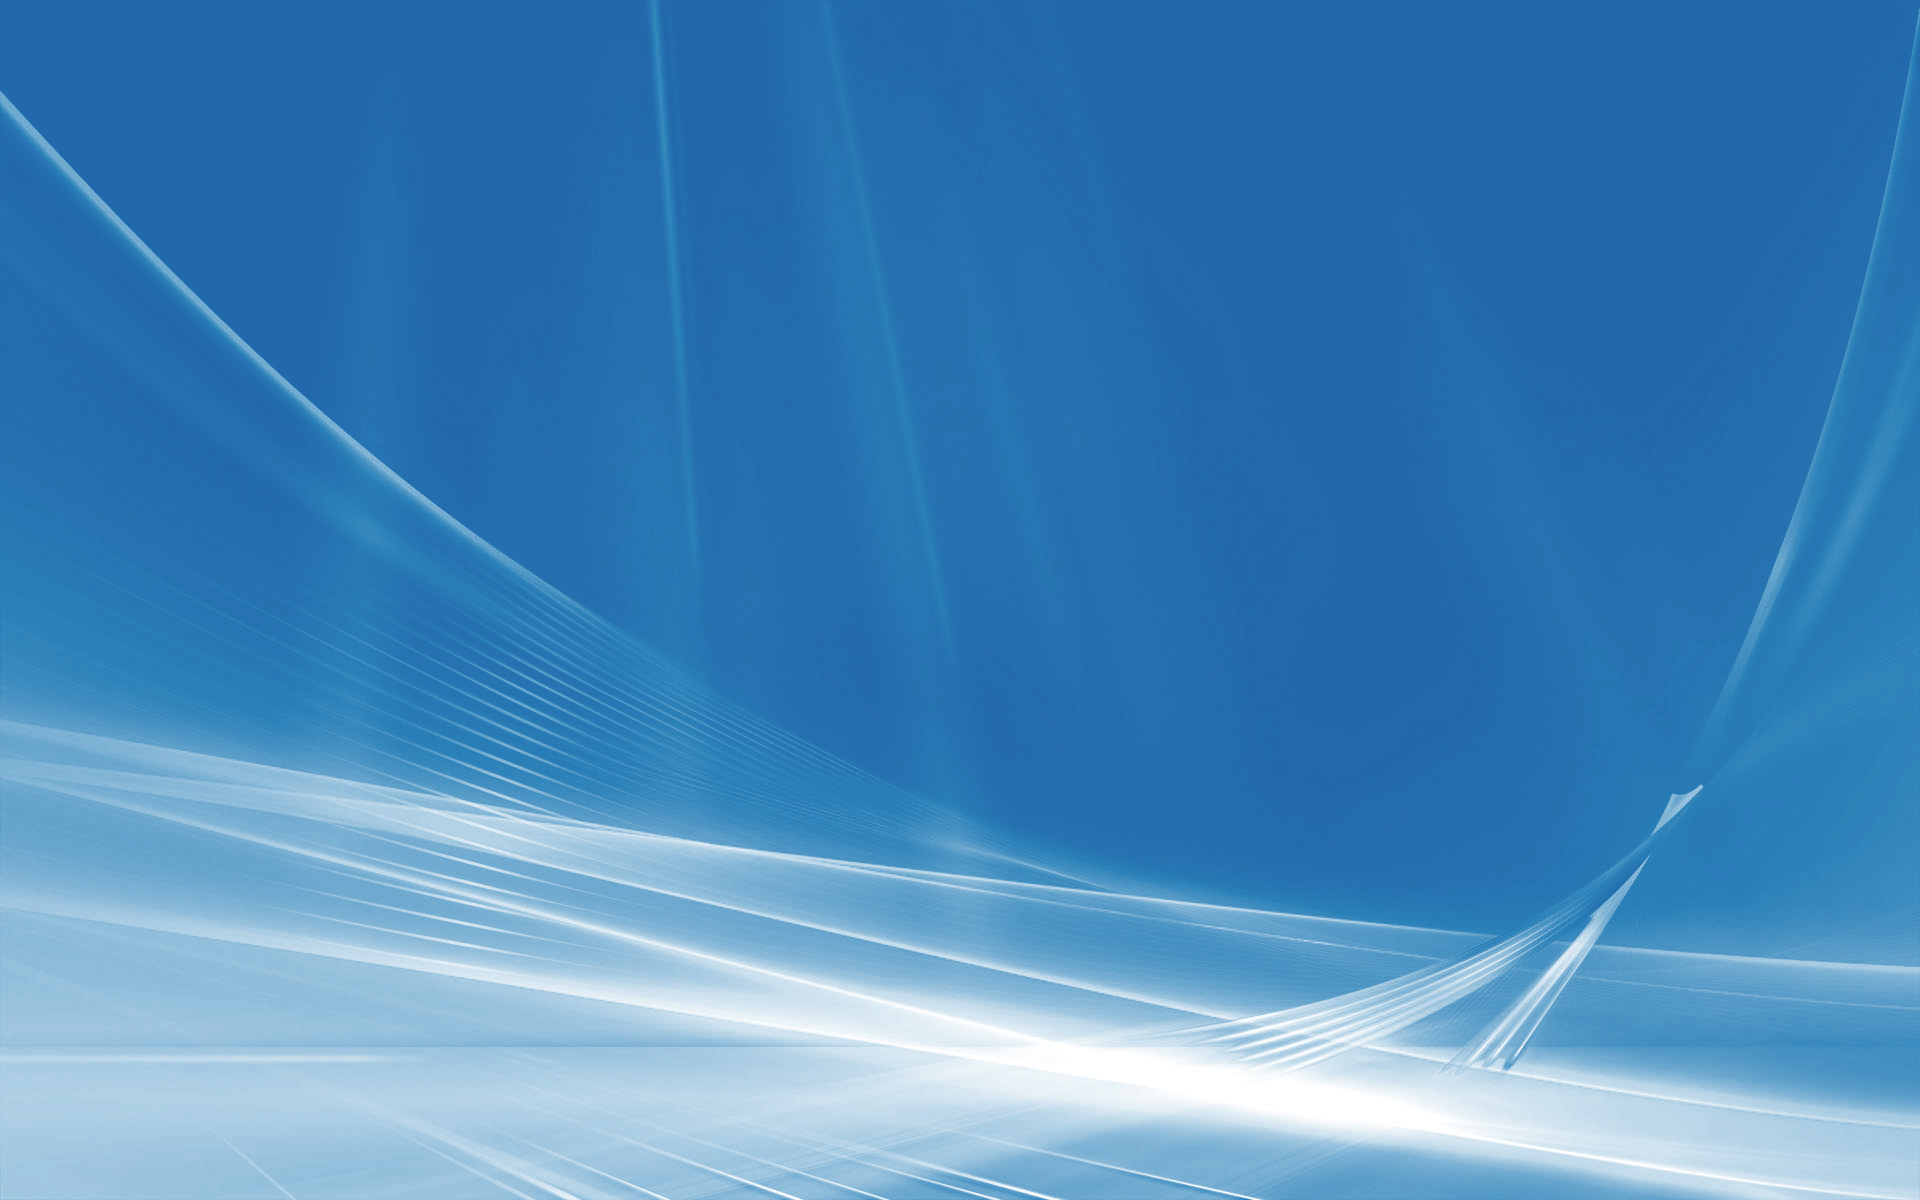 Blue and White Background Wallpapers WIN10 THEMES 1920x1200